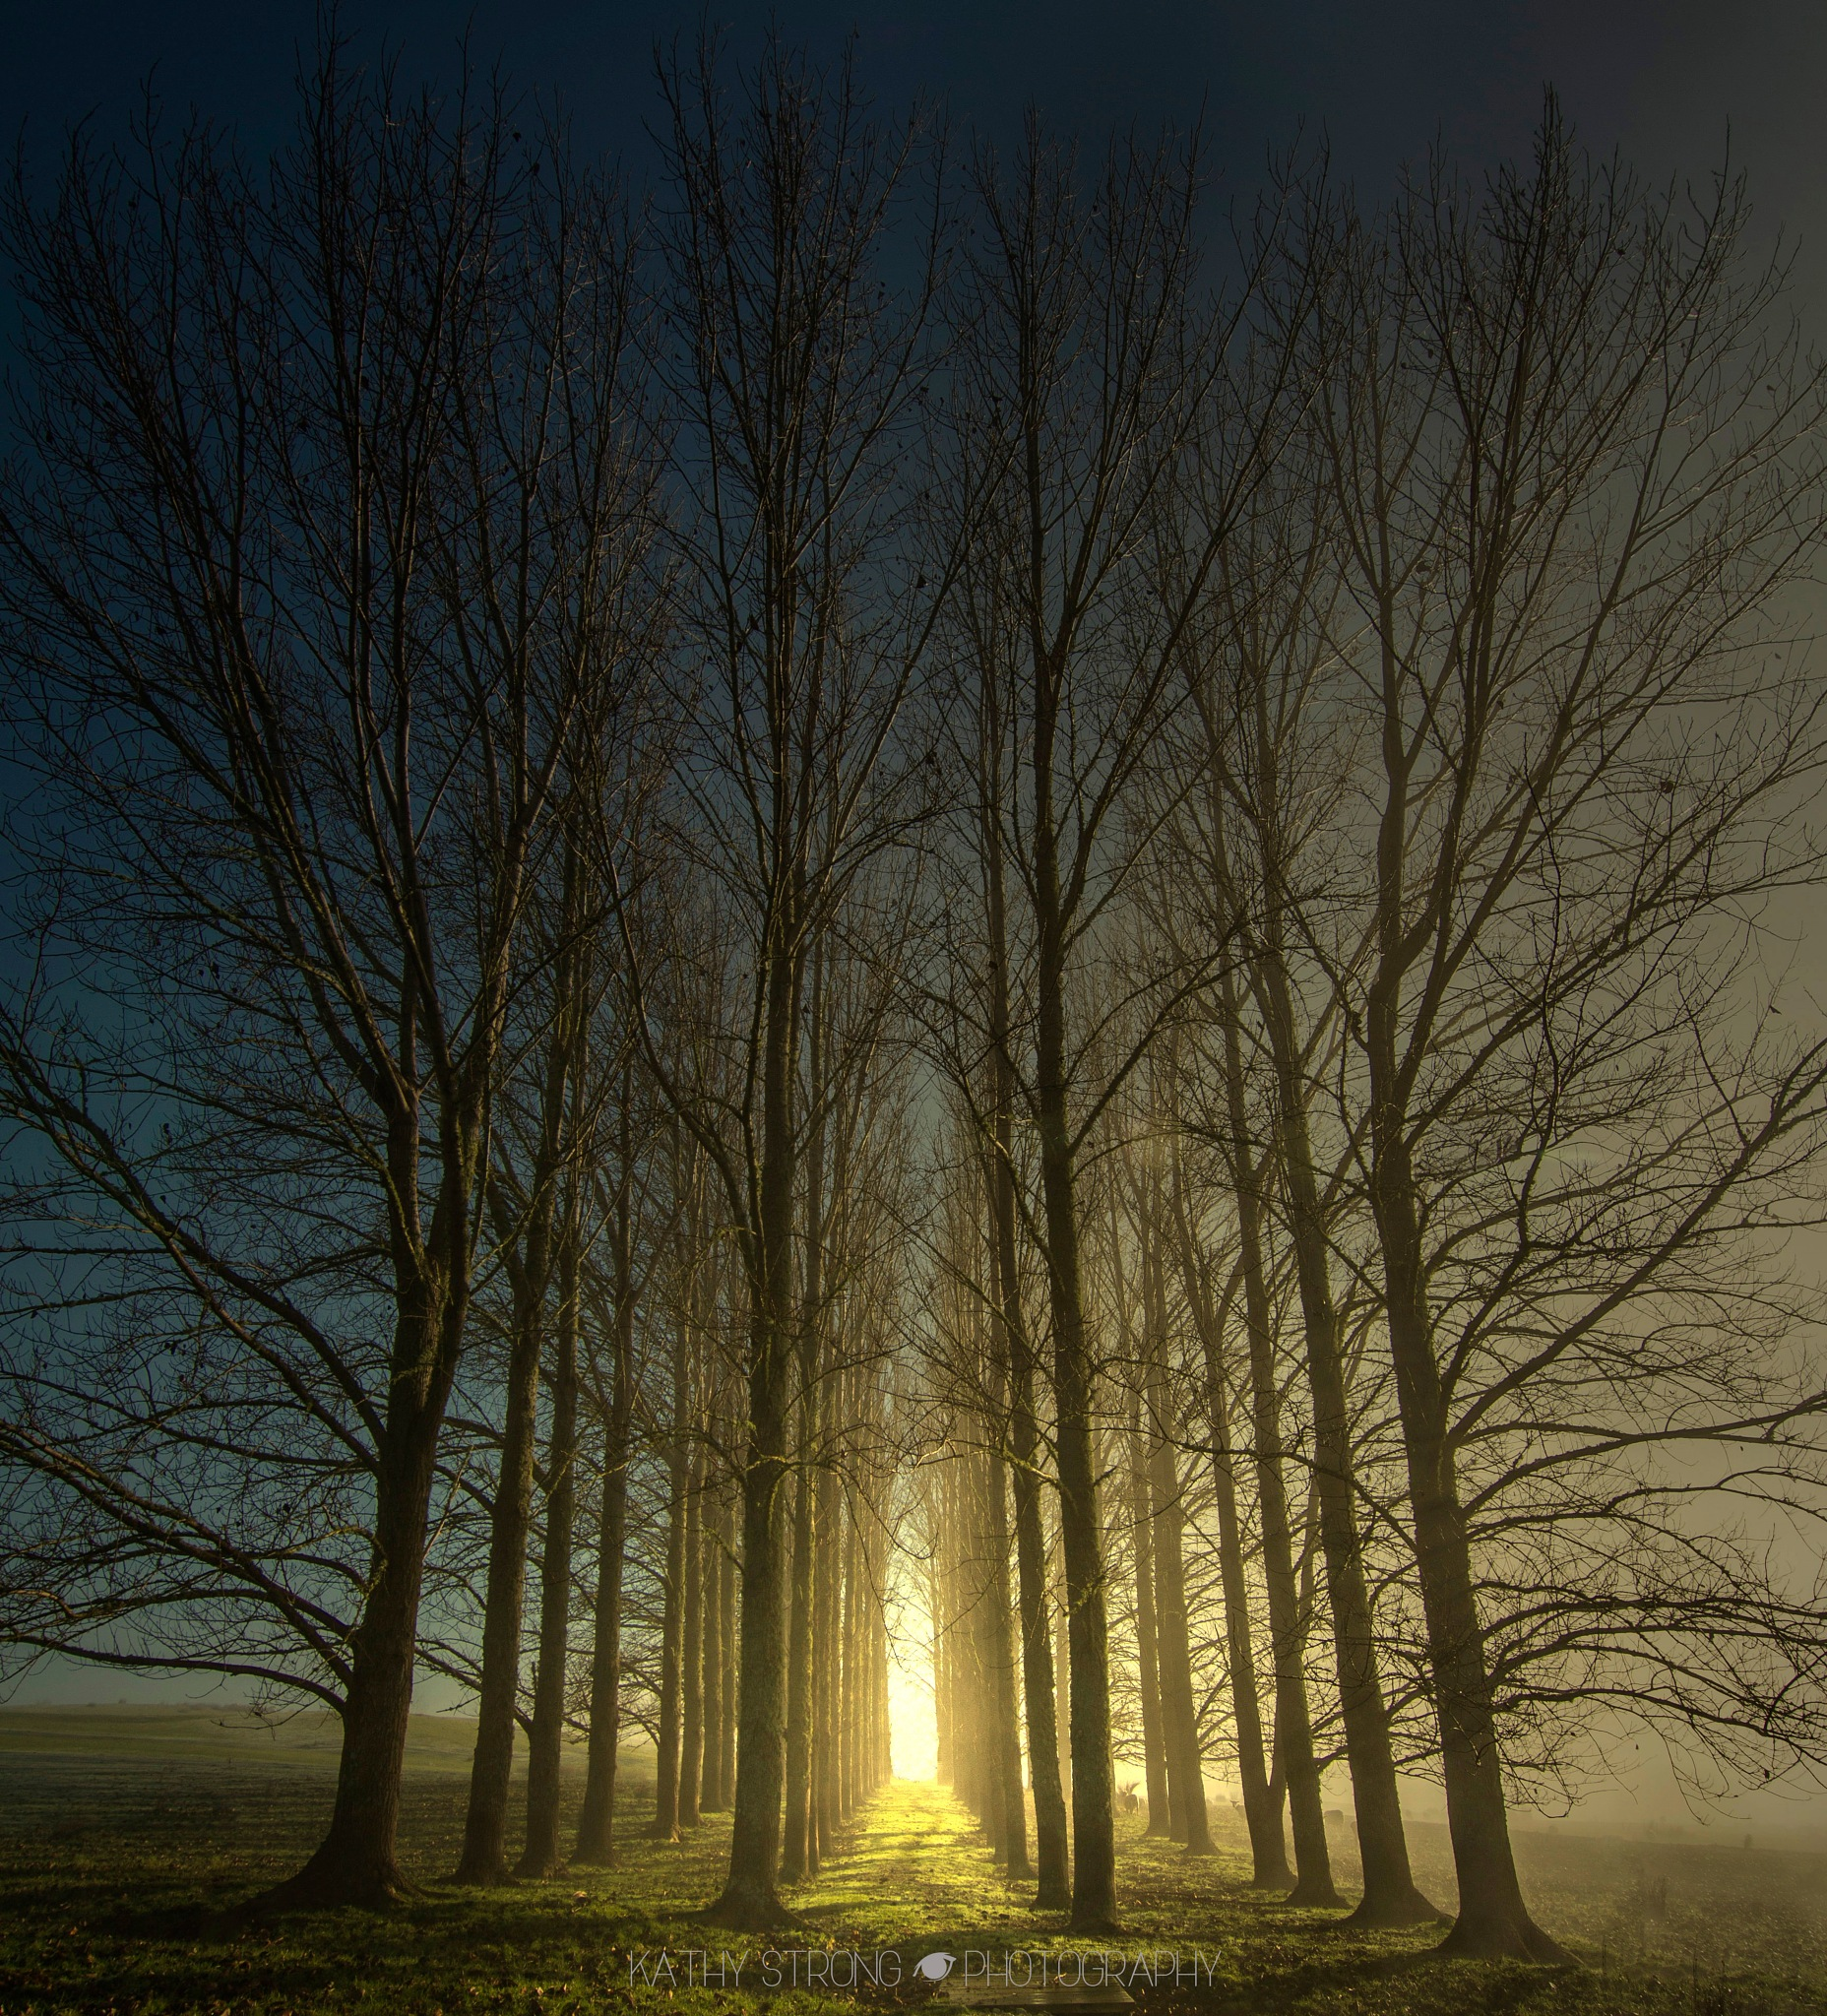 Tall Trees by Kathy Strong